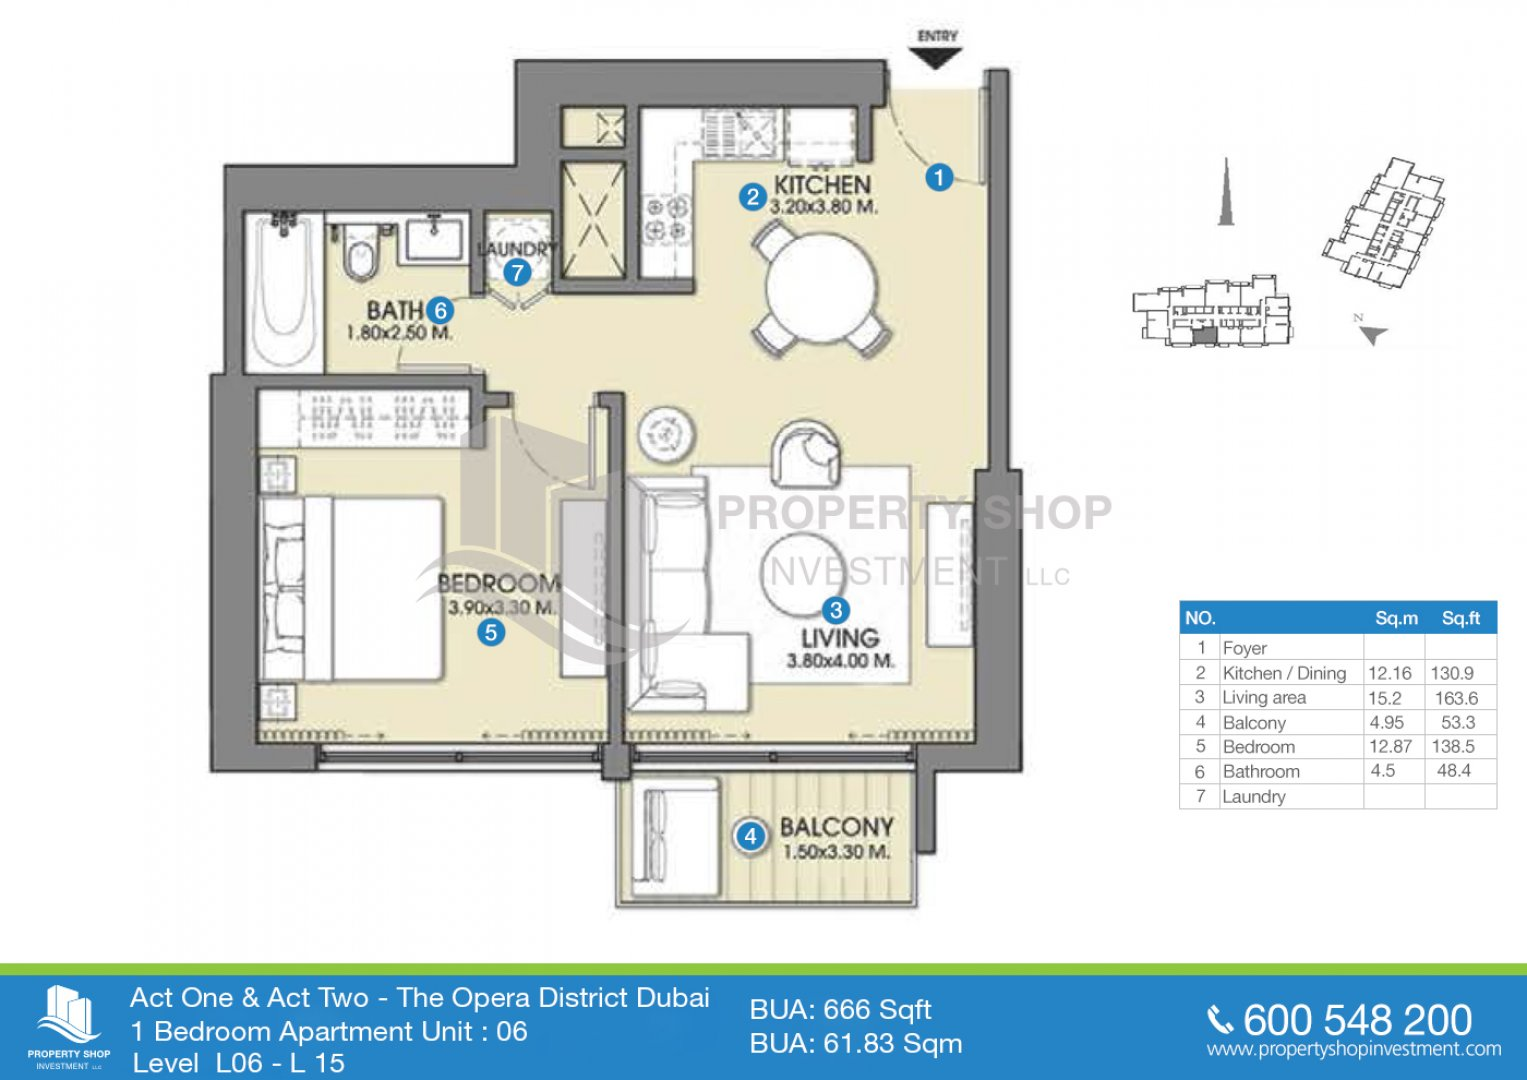 1 bedroom-unit-06-bua-666-sqft-act one-and-two-dubai